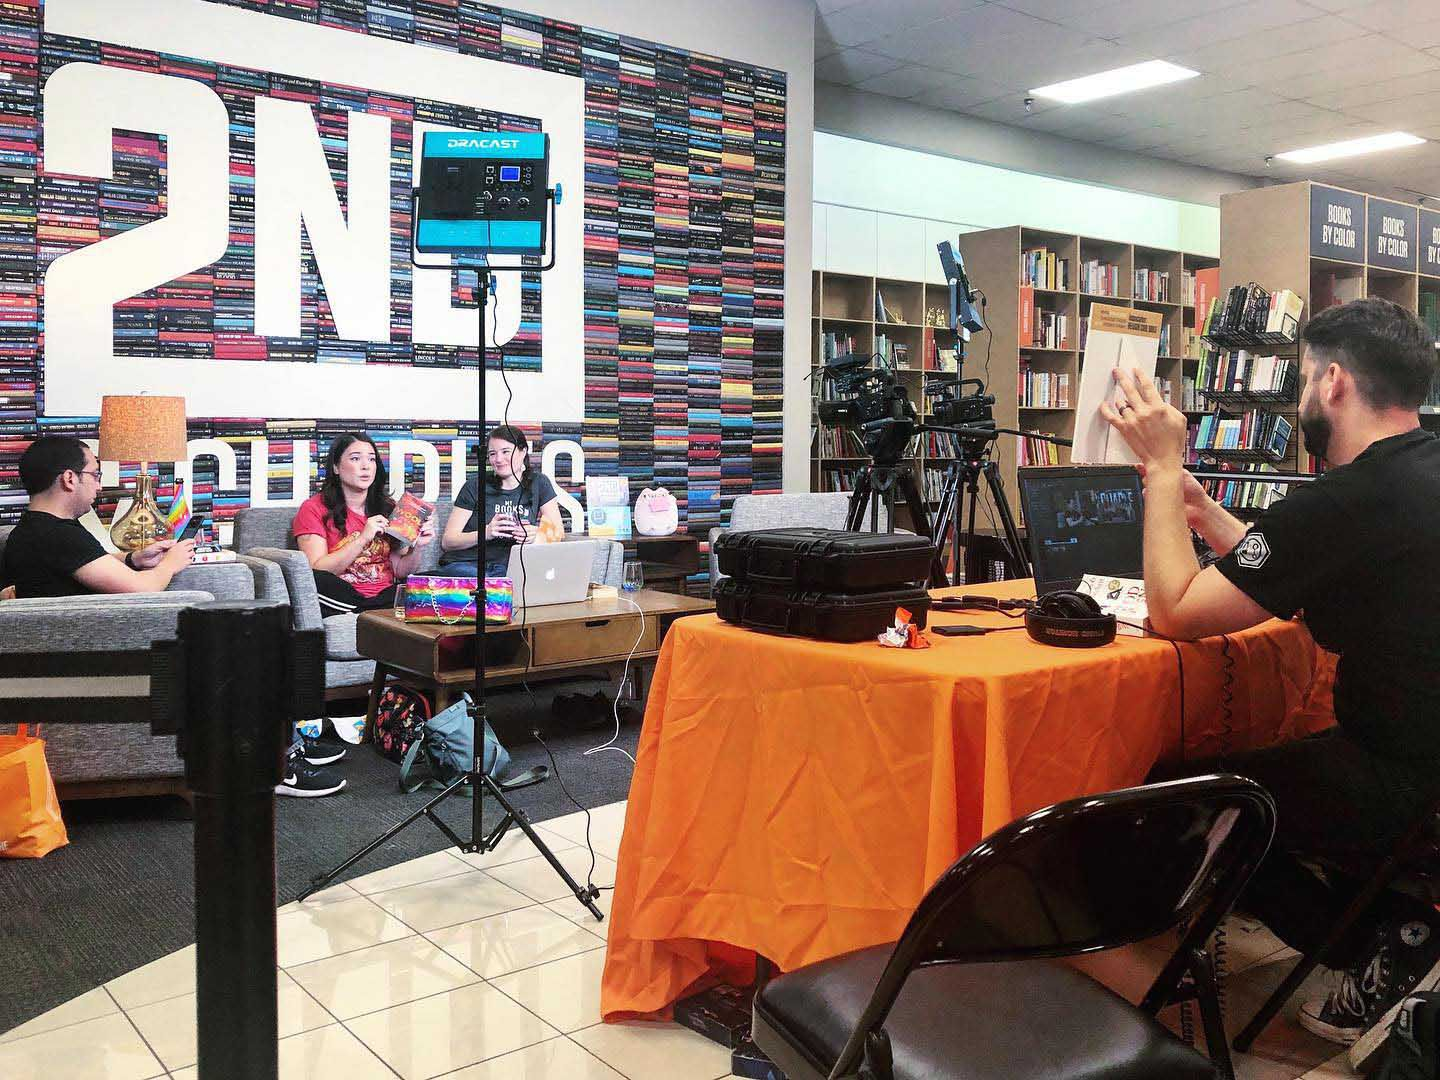 Local Bibliophiles Start Online Book Club For Fantasy Fans Al Com Meet adam schwartz, the guy in all those 'it's a … 11.05.2020 · the literarily wasted team is, from left, talia lin, adam schwartz, christy schwartz and lucas pepke. al com